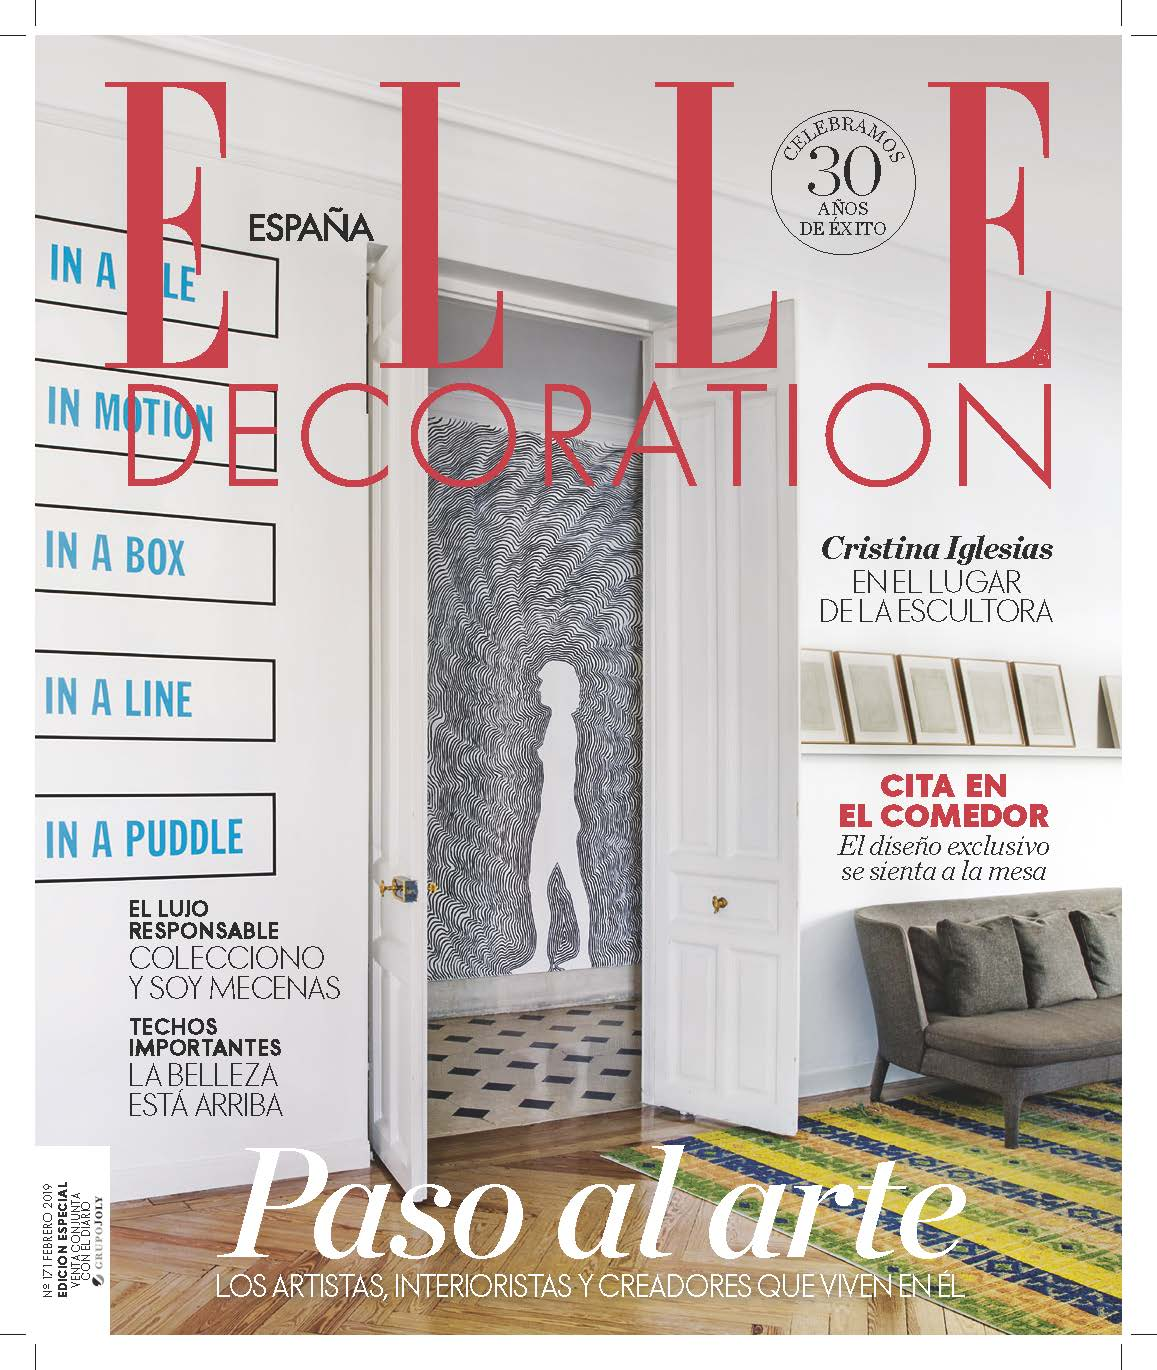 ELLE DECORATION ESPANA - ED171 - FRANCESCA ANCIHINI